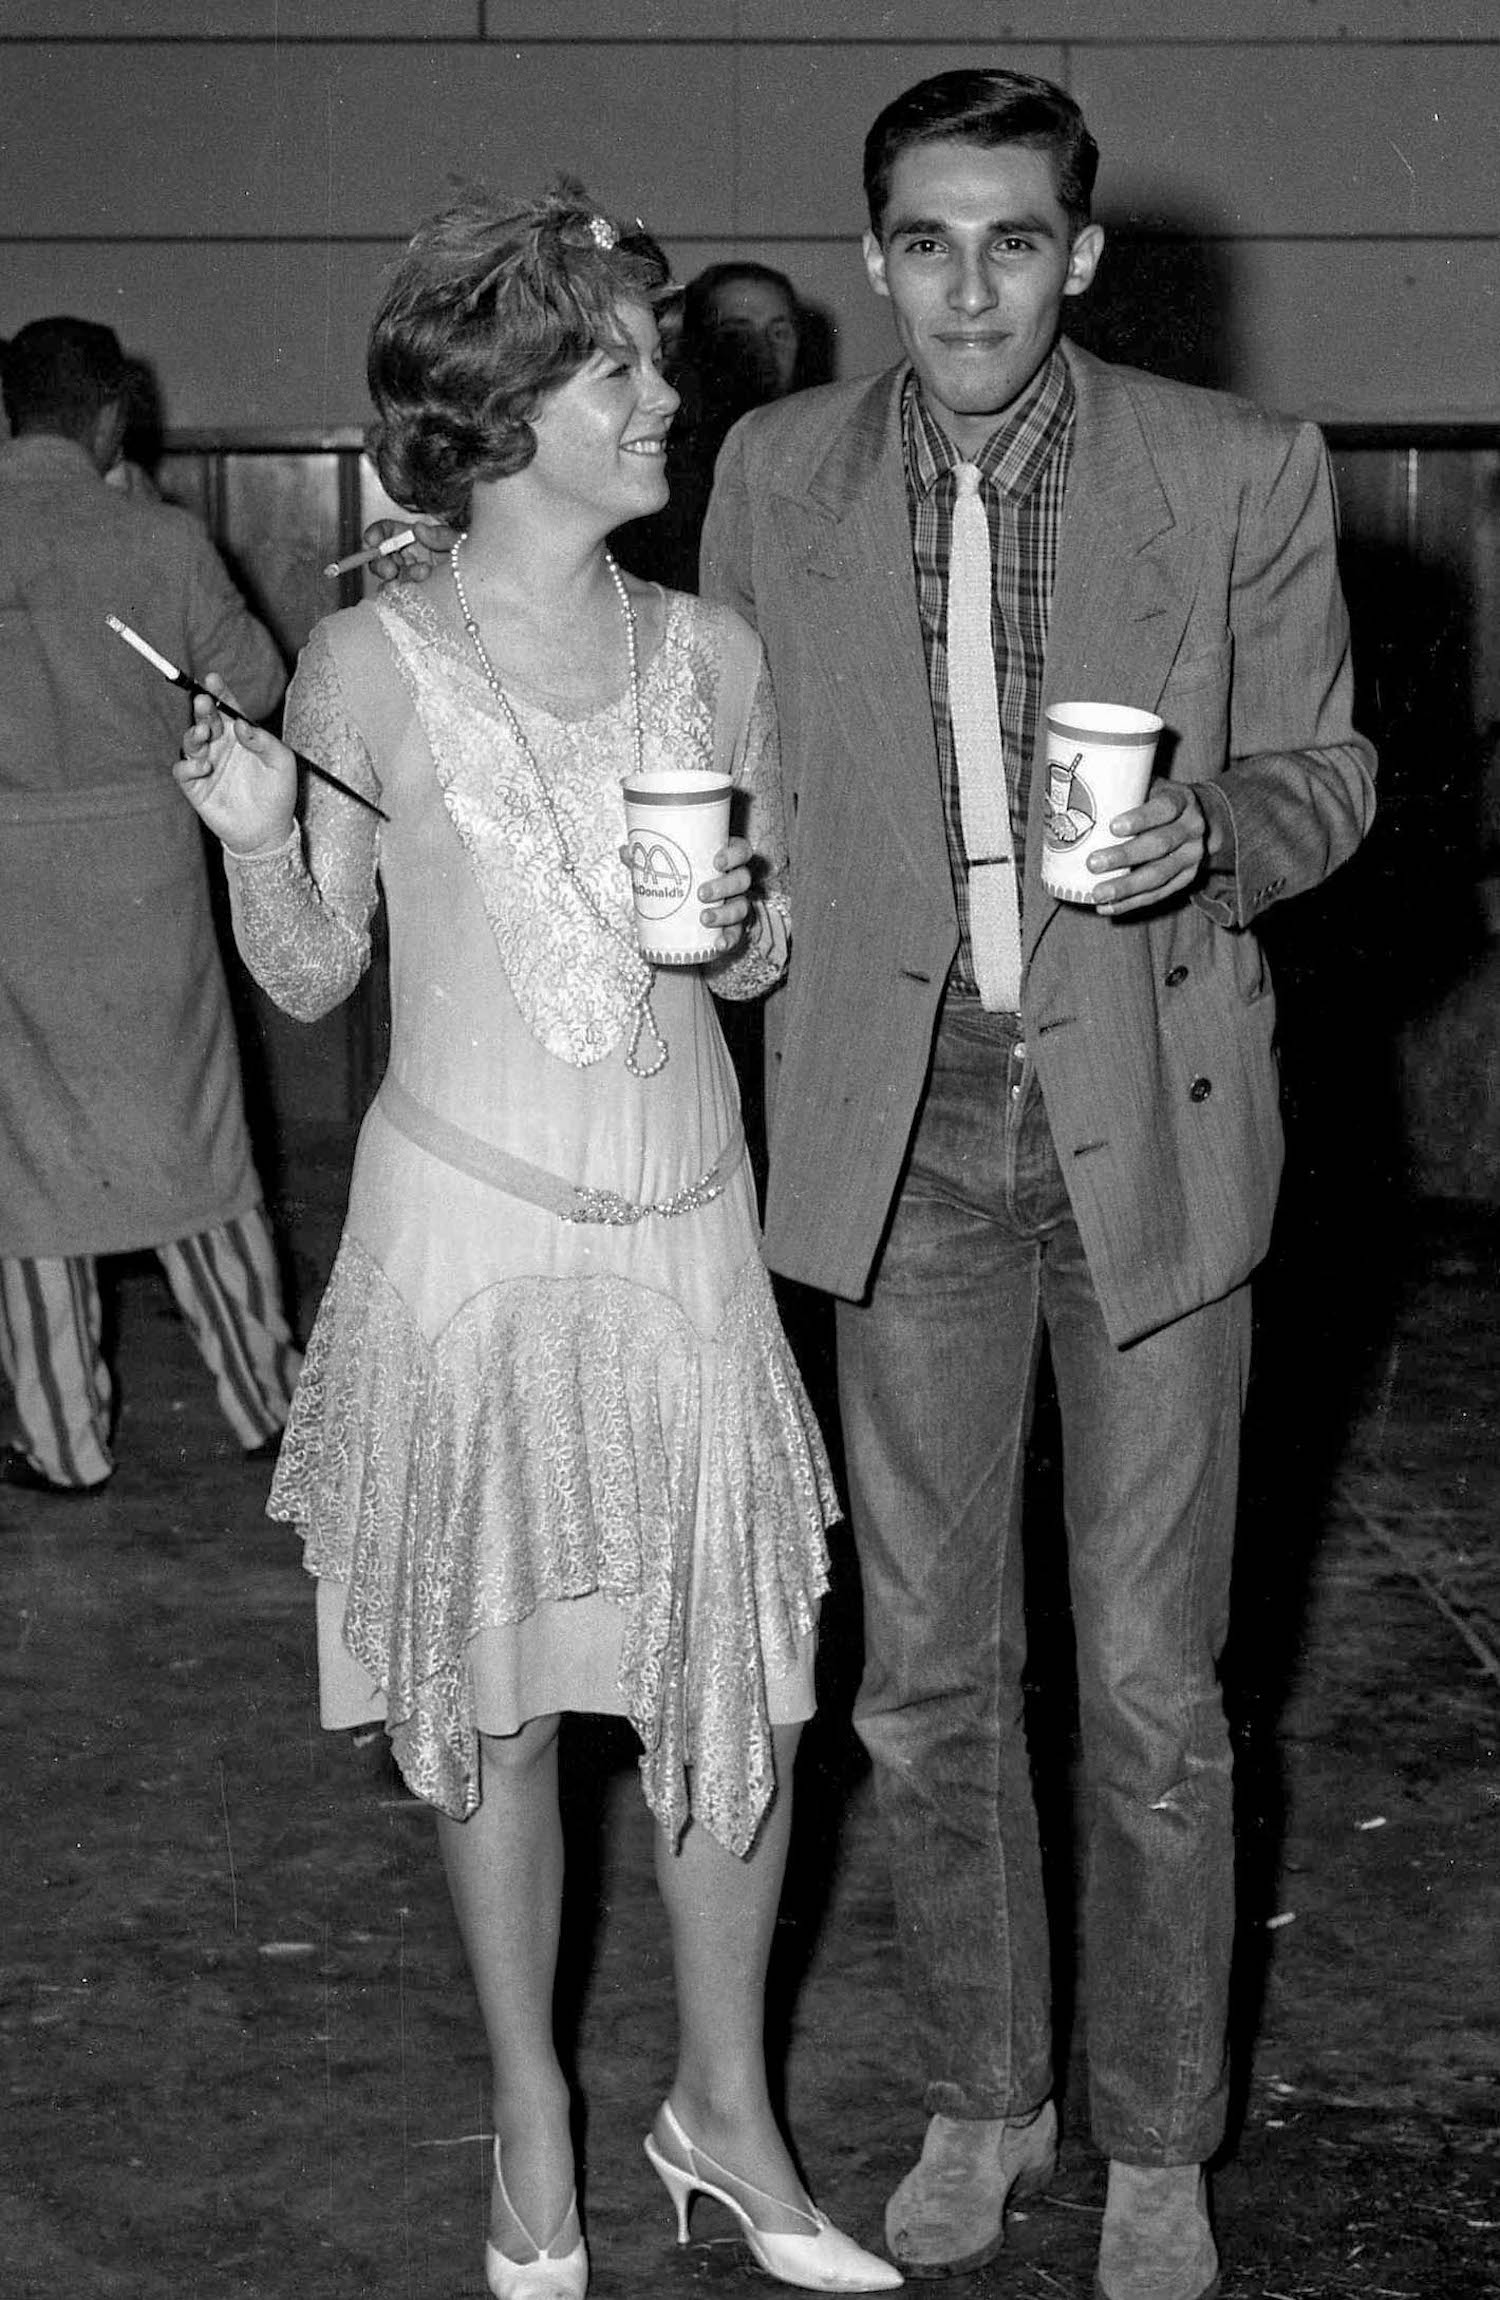 Fresno State College, Dec 13, 1963, costume party, Joe and date